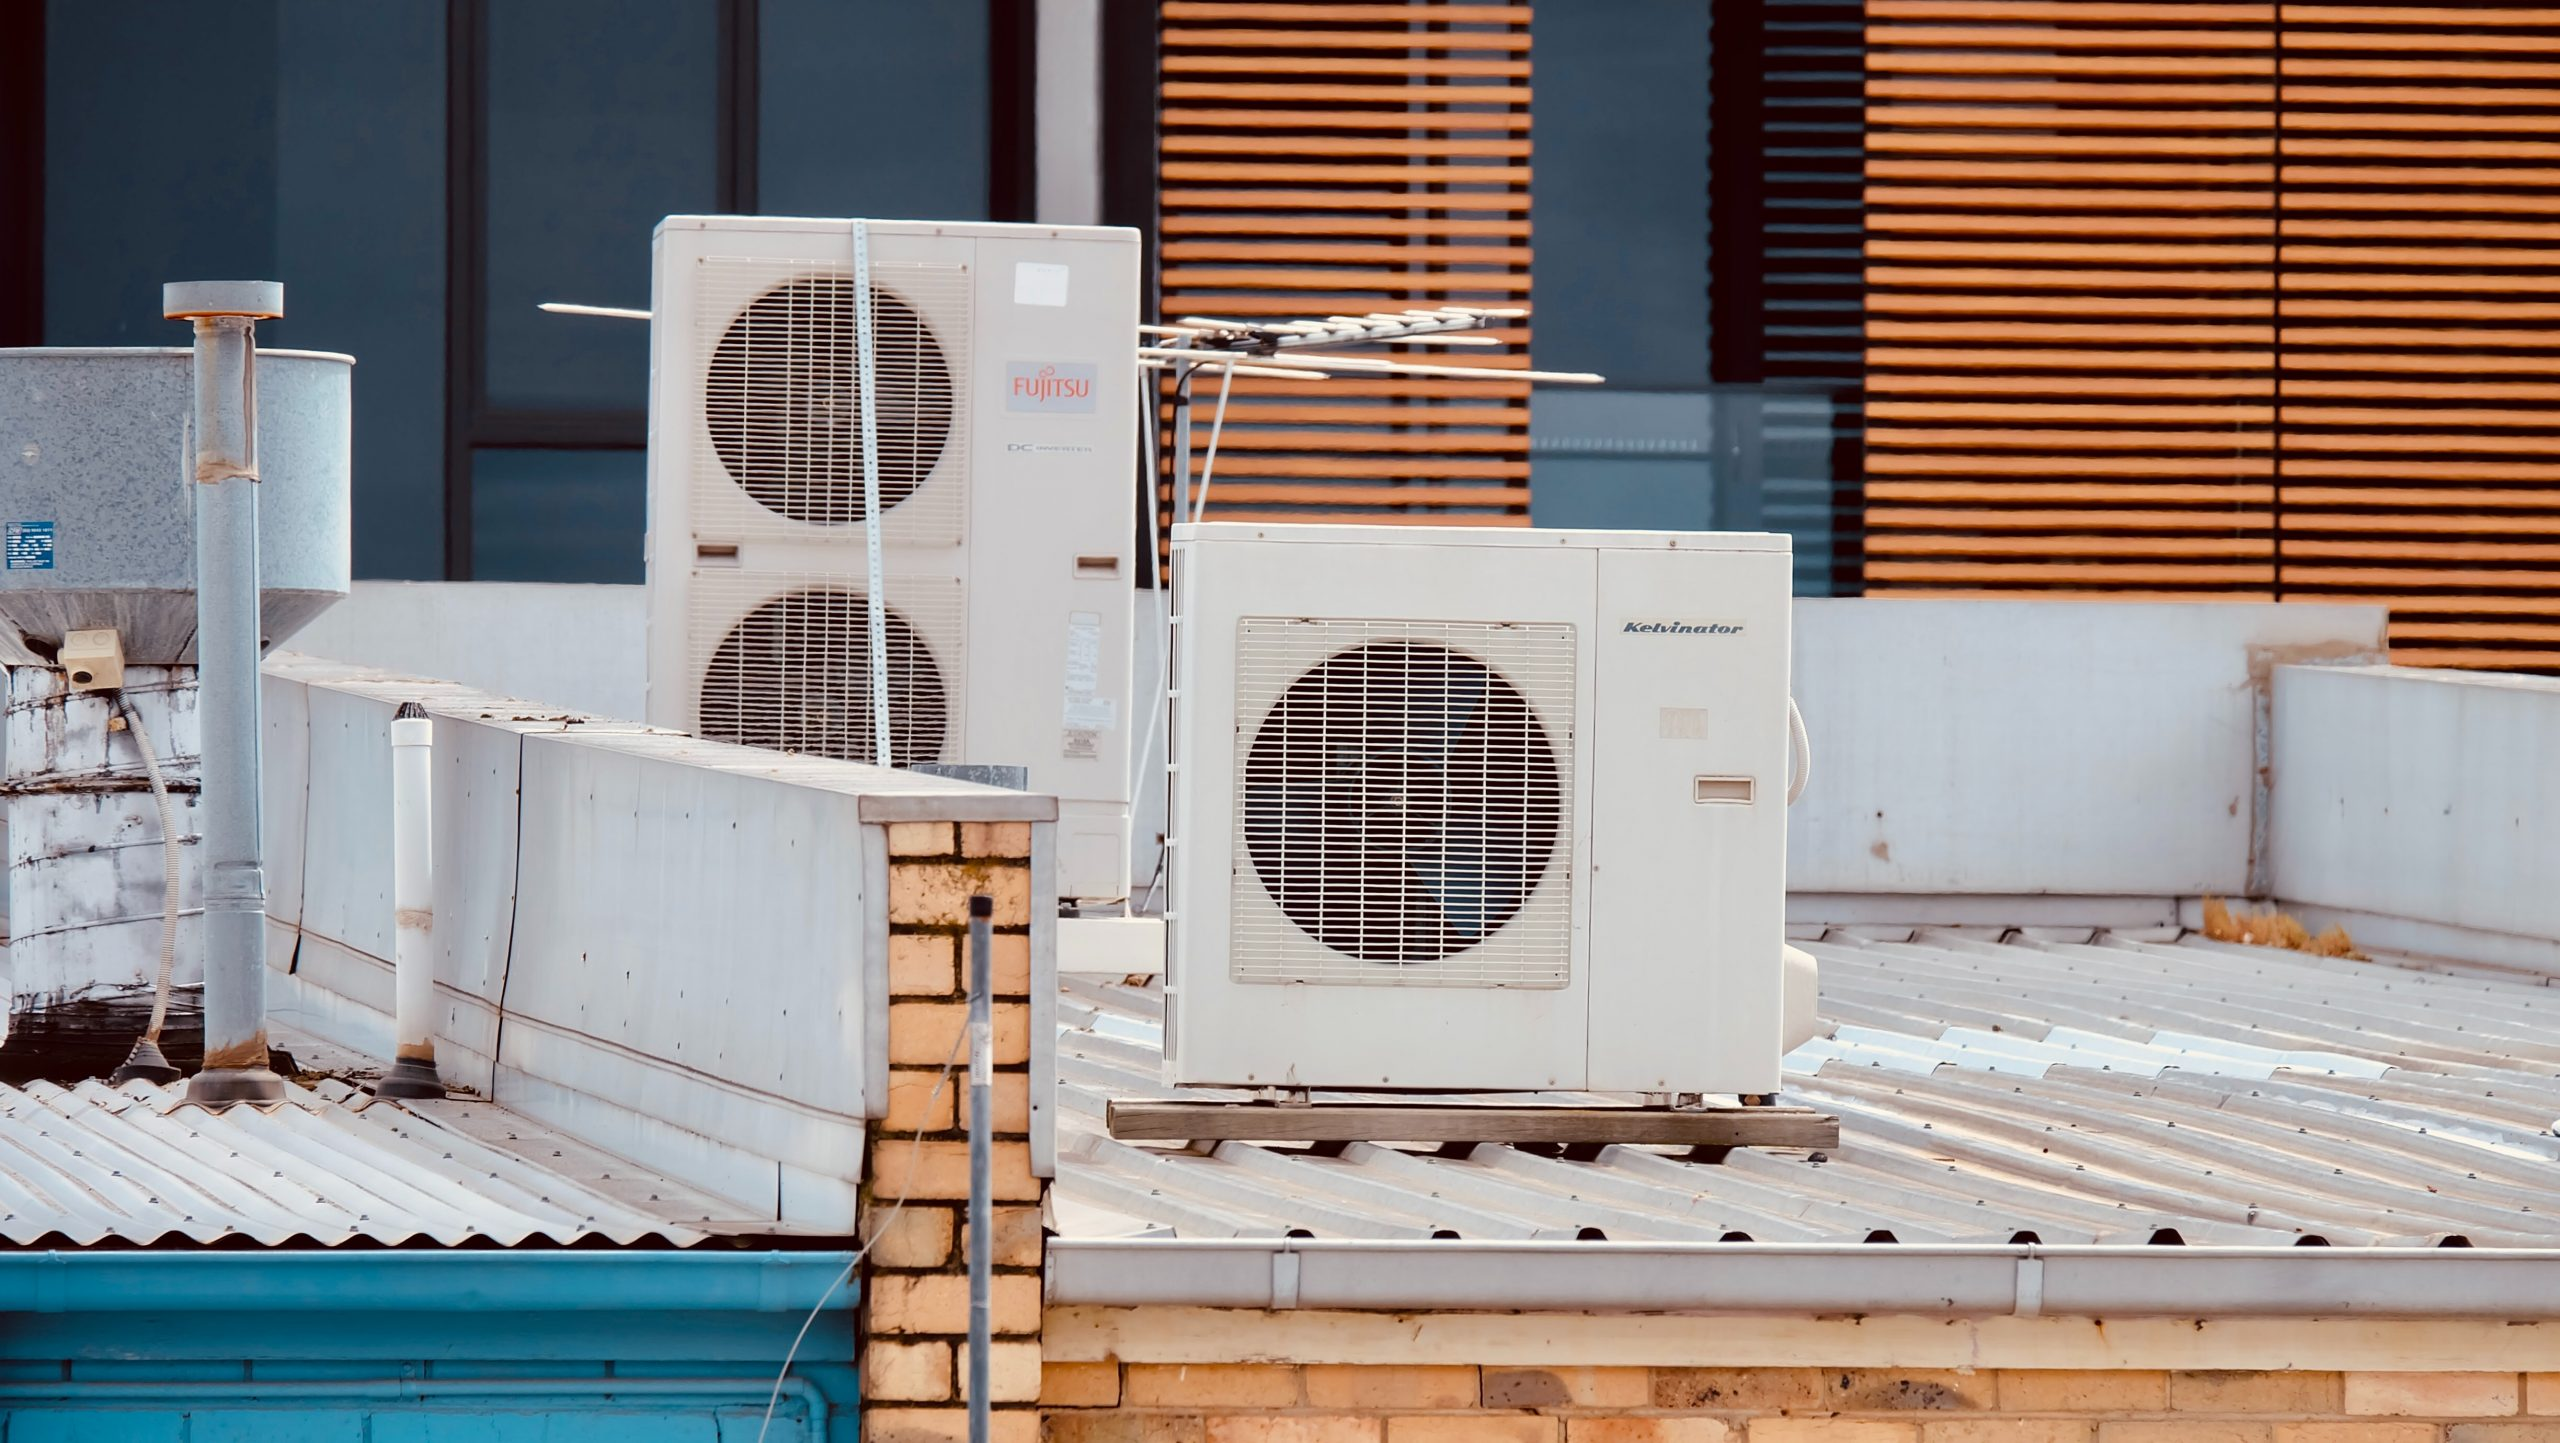 Why we should not Overlook Replacing the Old Air Conditioning Units of the Light Commercial Buildings